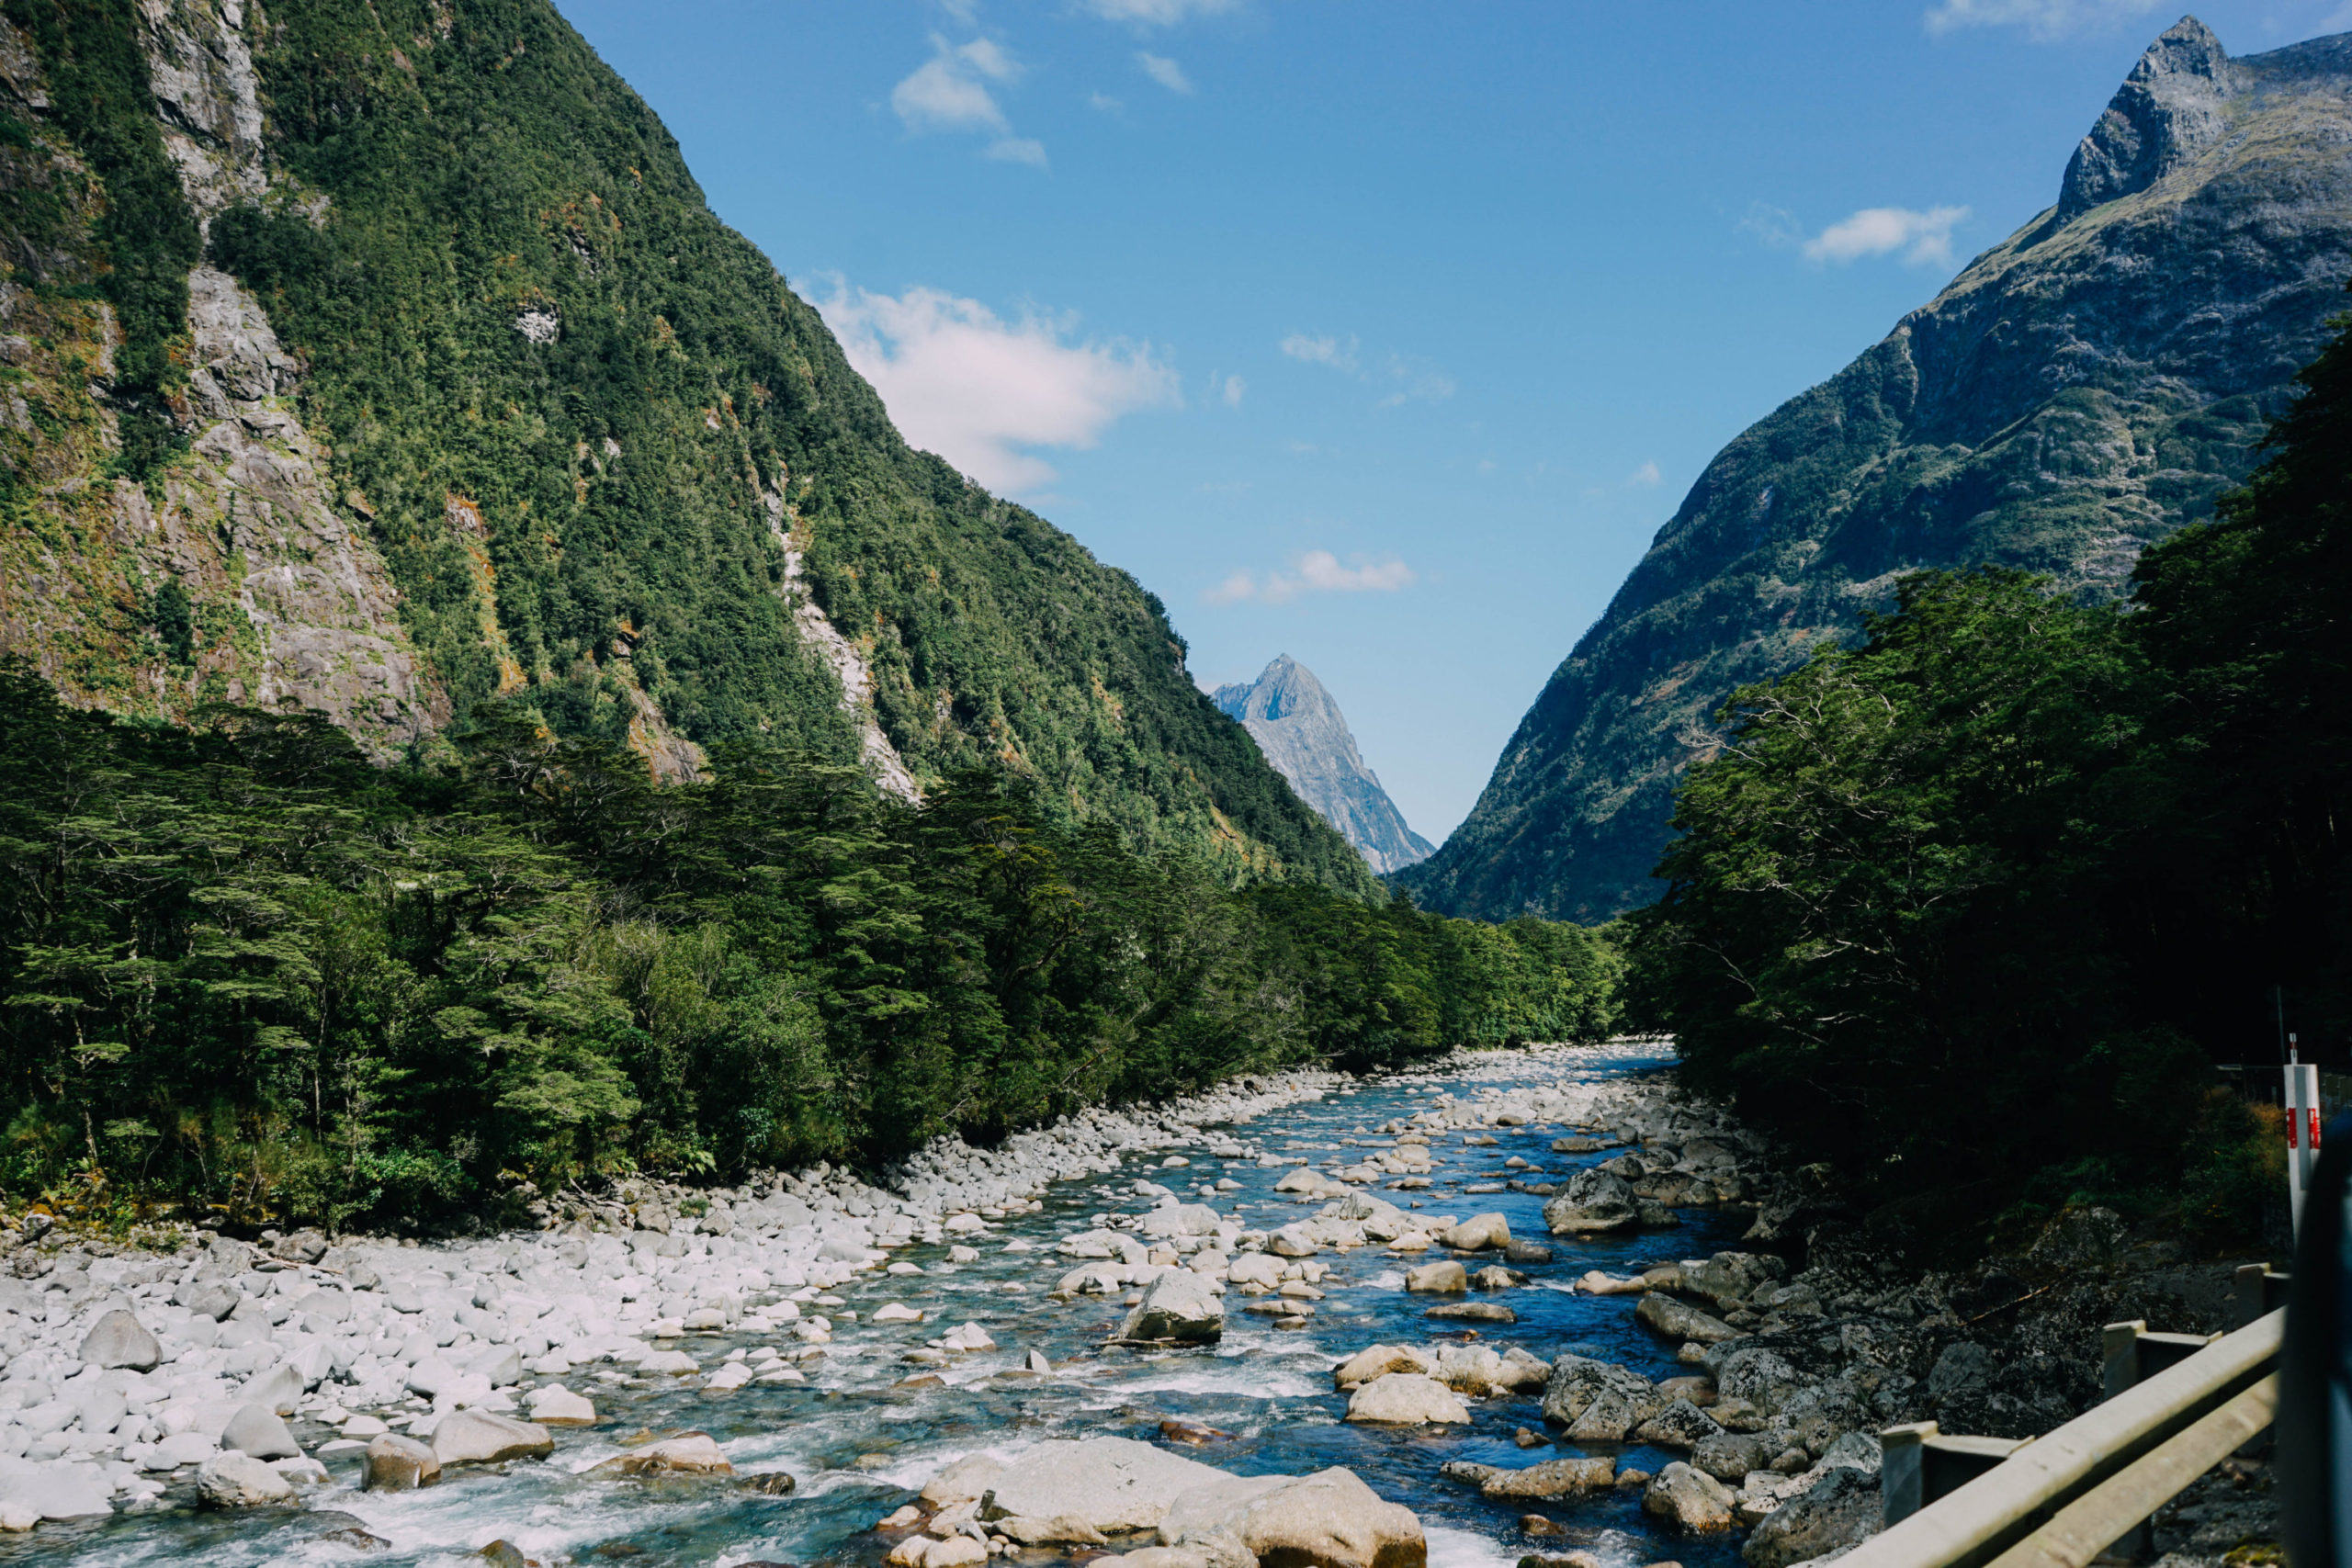 A Backpackers Guide to New Zealand (Part 2)